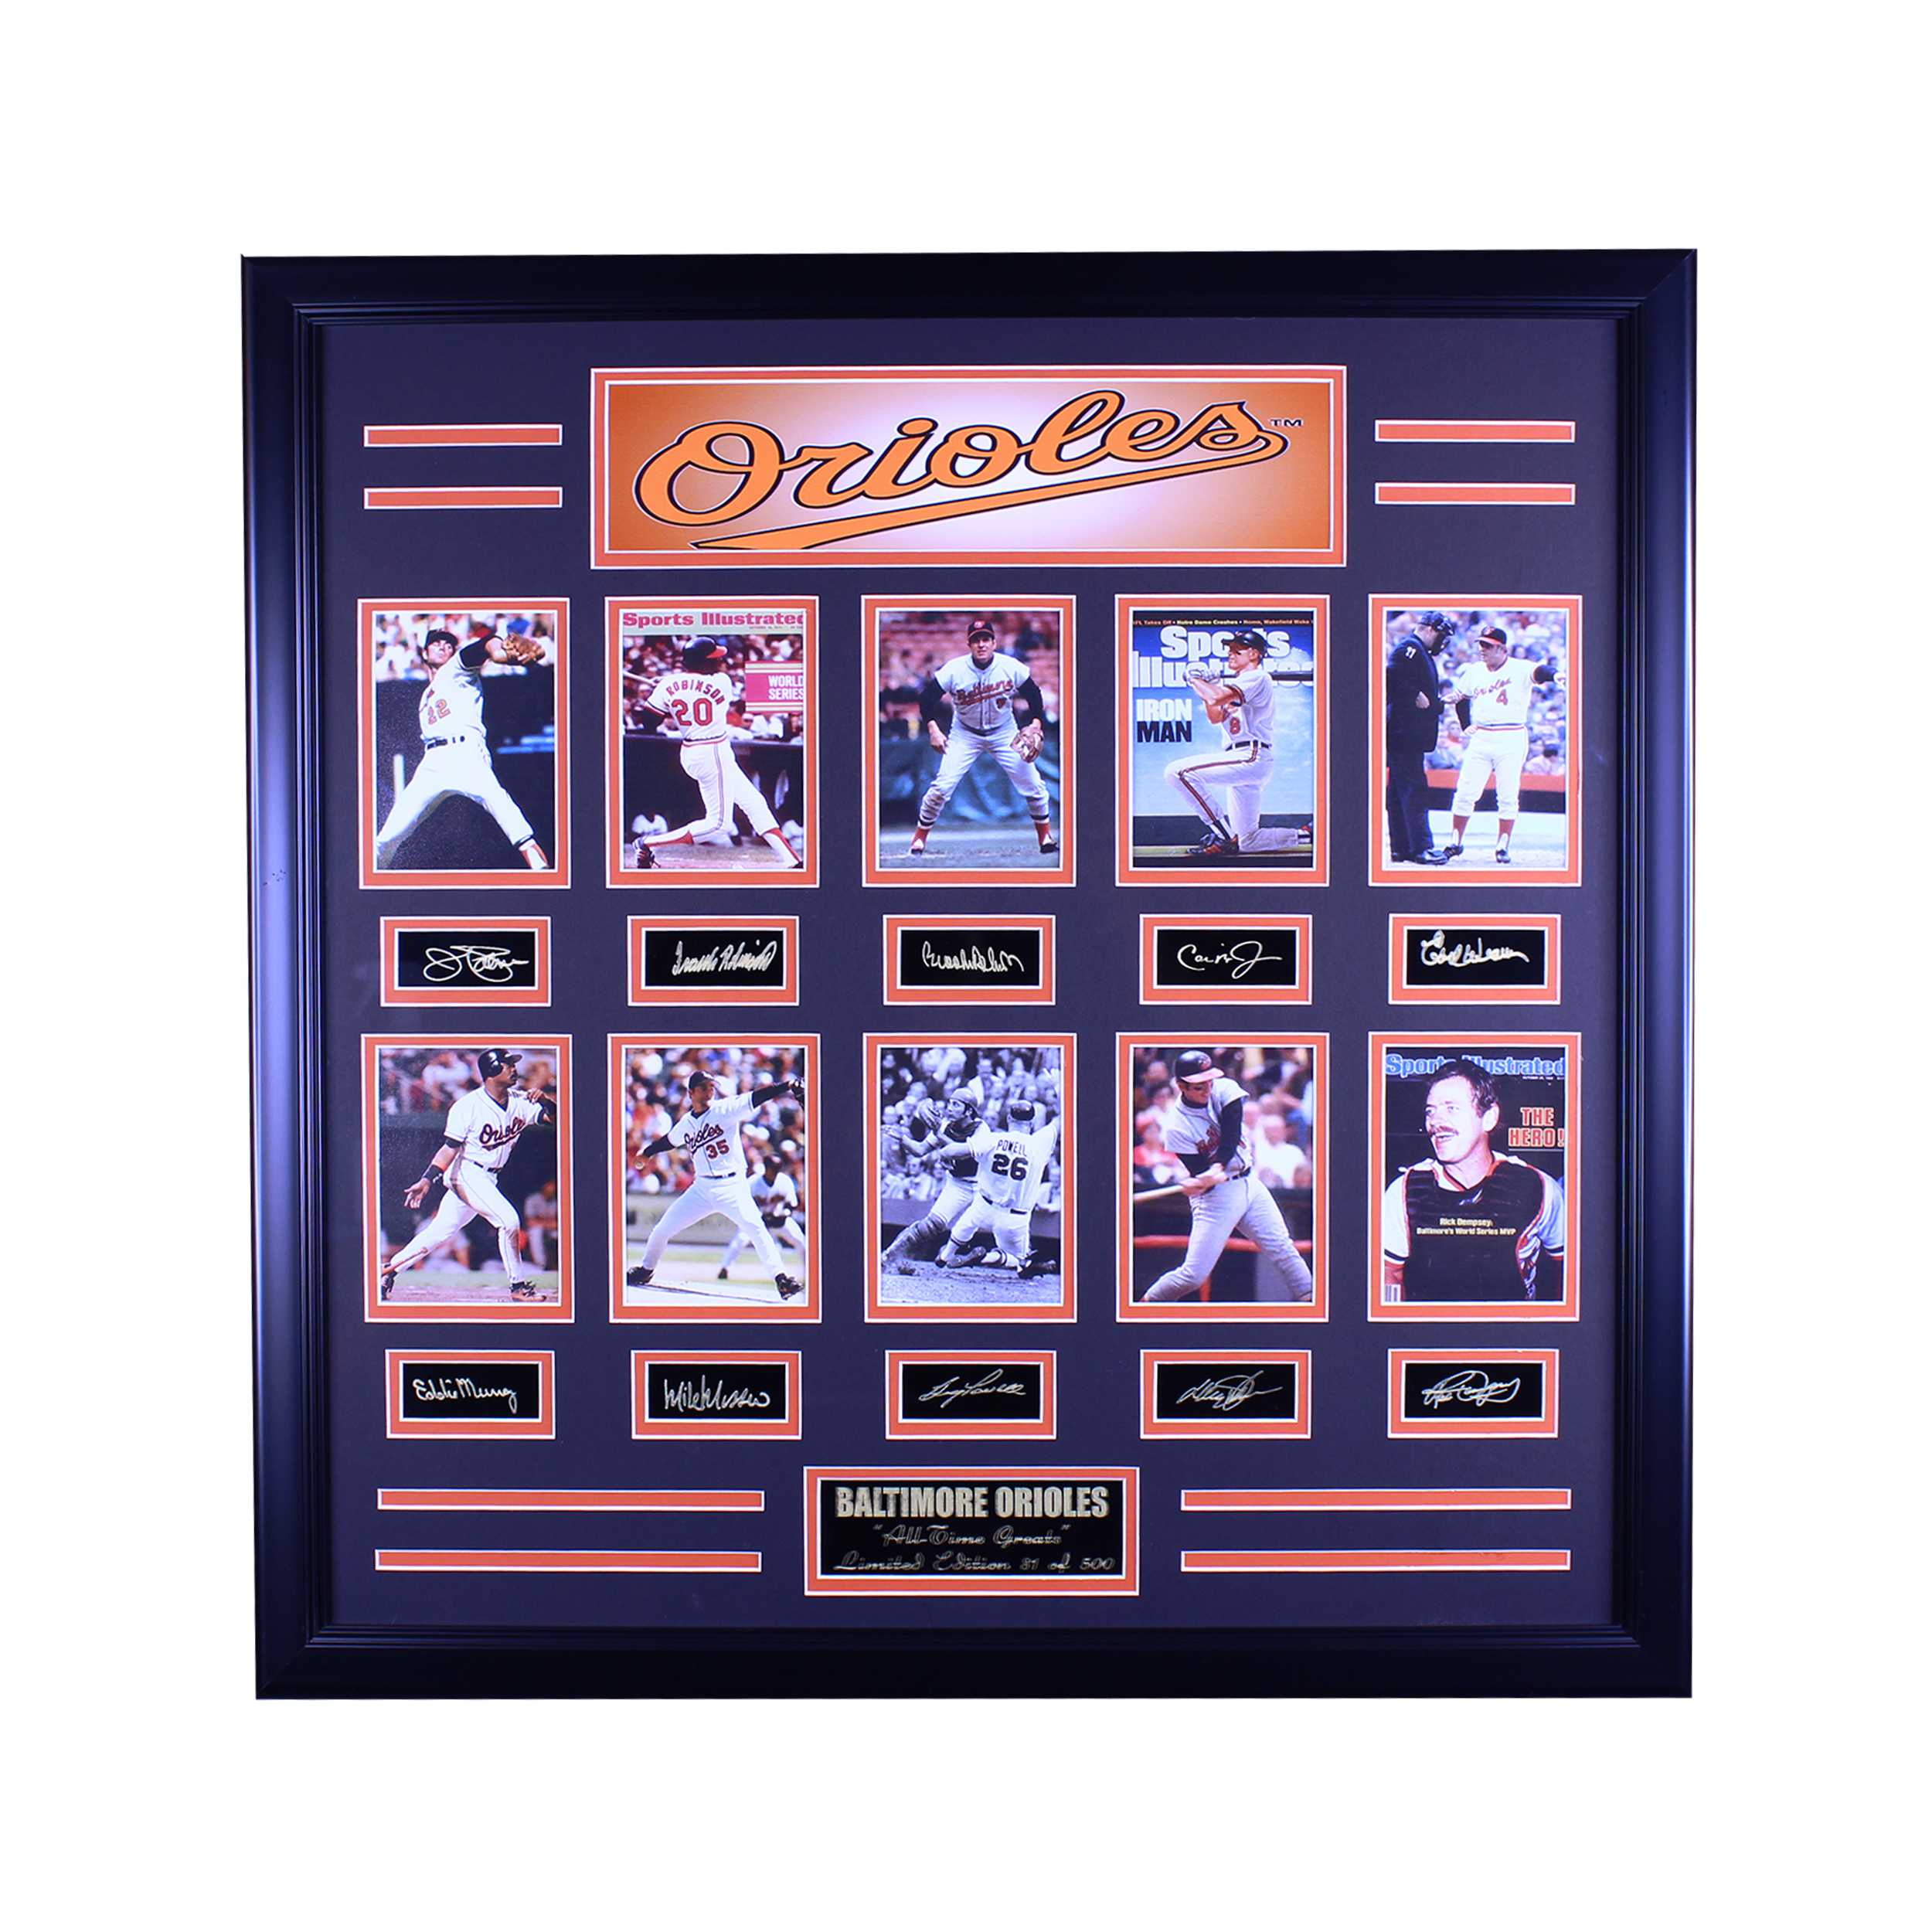 BALTIMORE ORIOLES ALL TIME GREATS ENGRAVED SIGNATURE LARGE FRAME